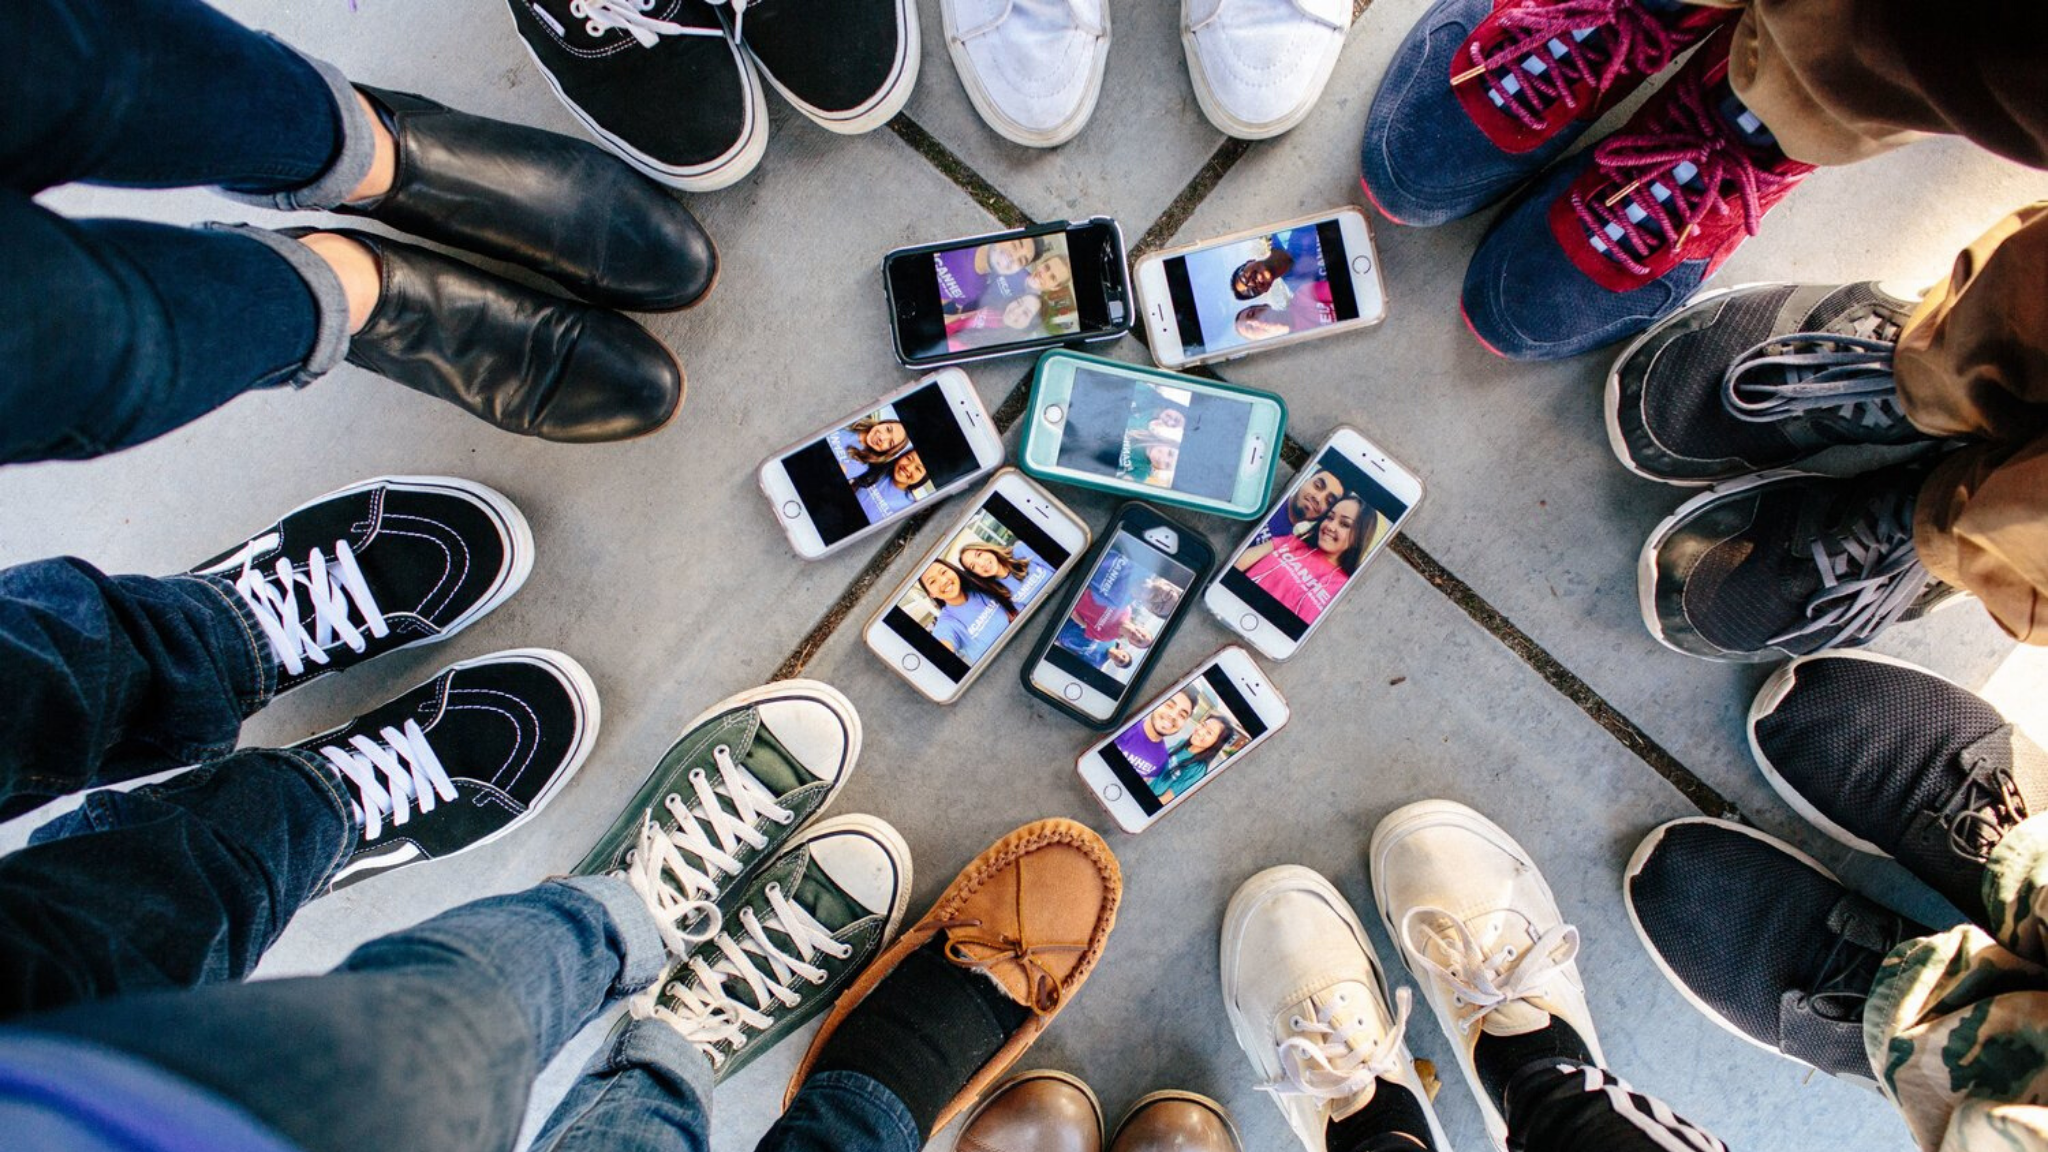 Students standings around a pile of phones on the ground